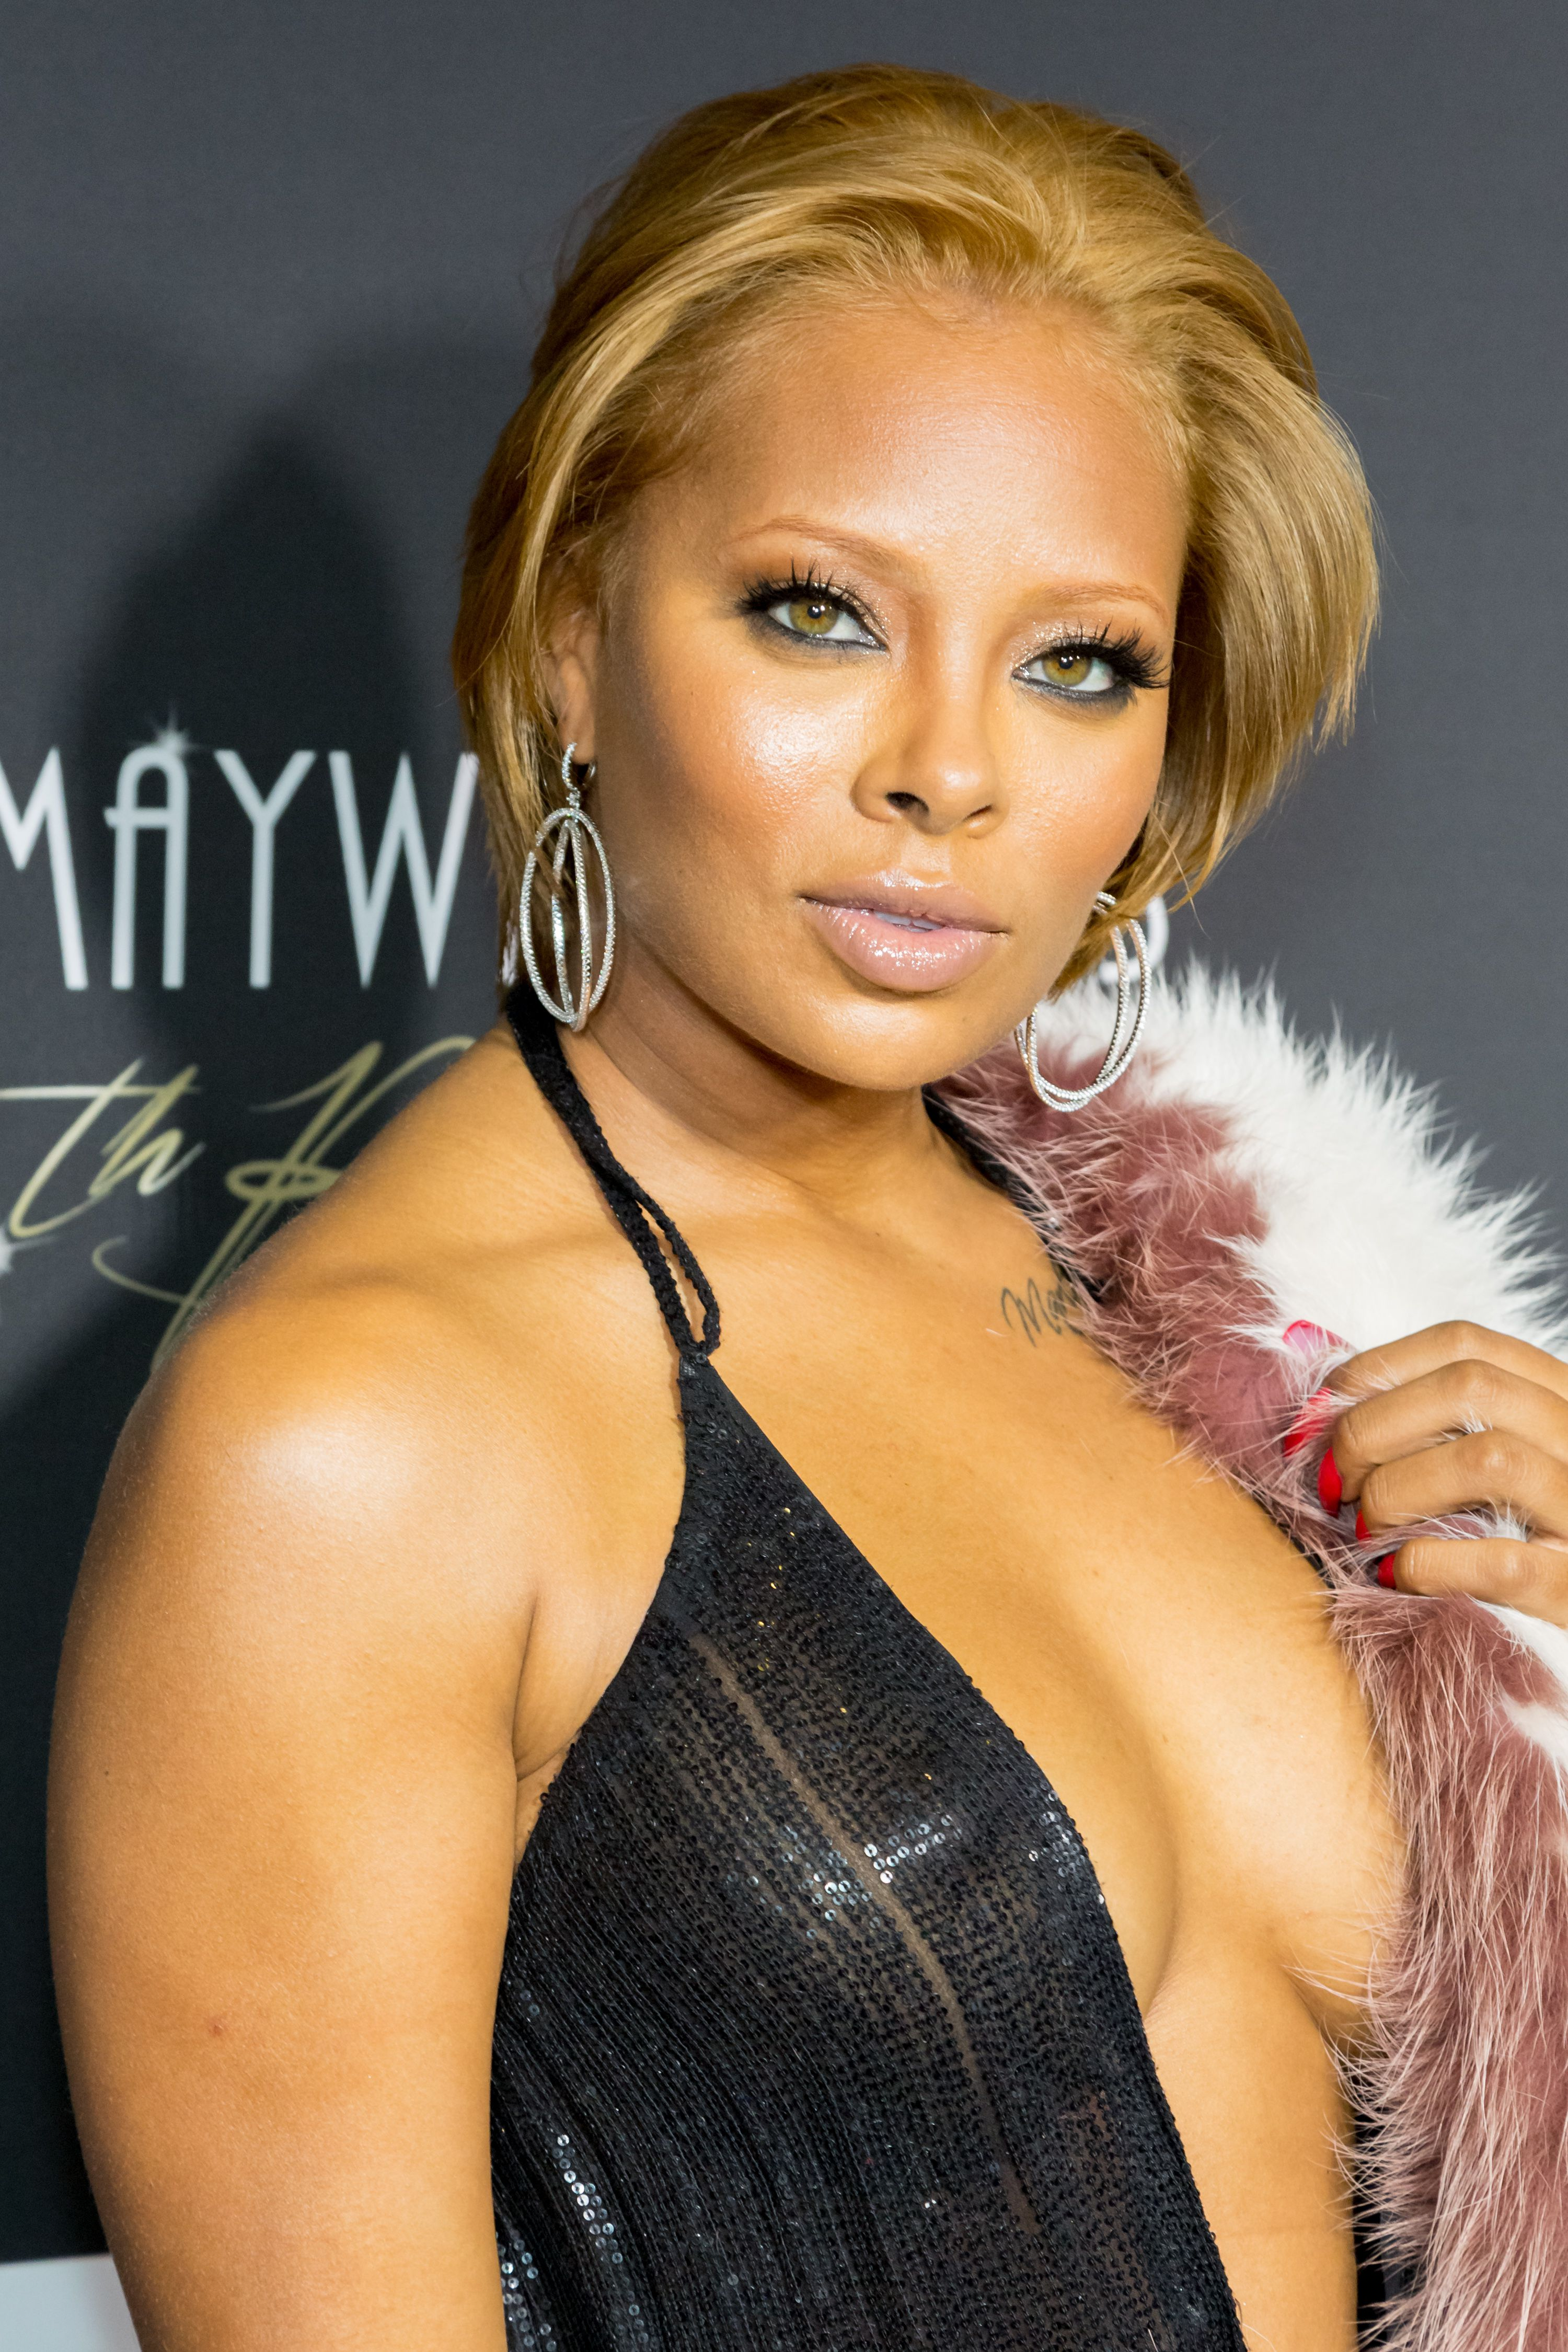 Thanks for Nude photos of eva pigford have